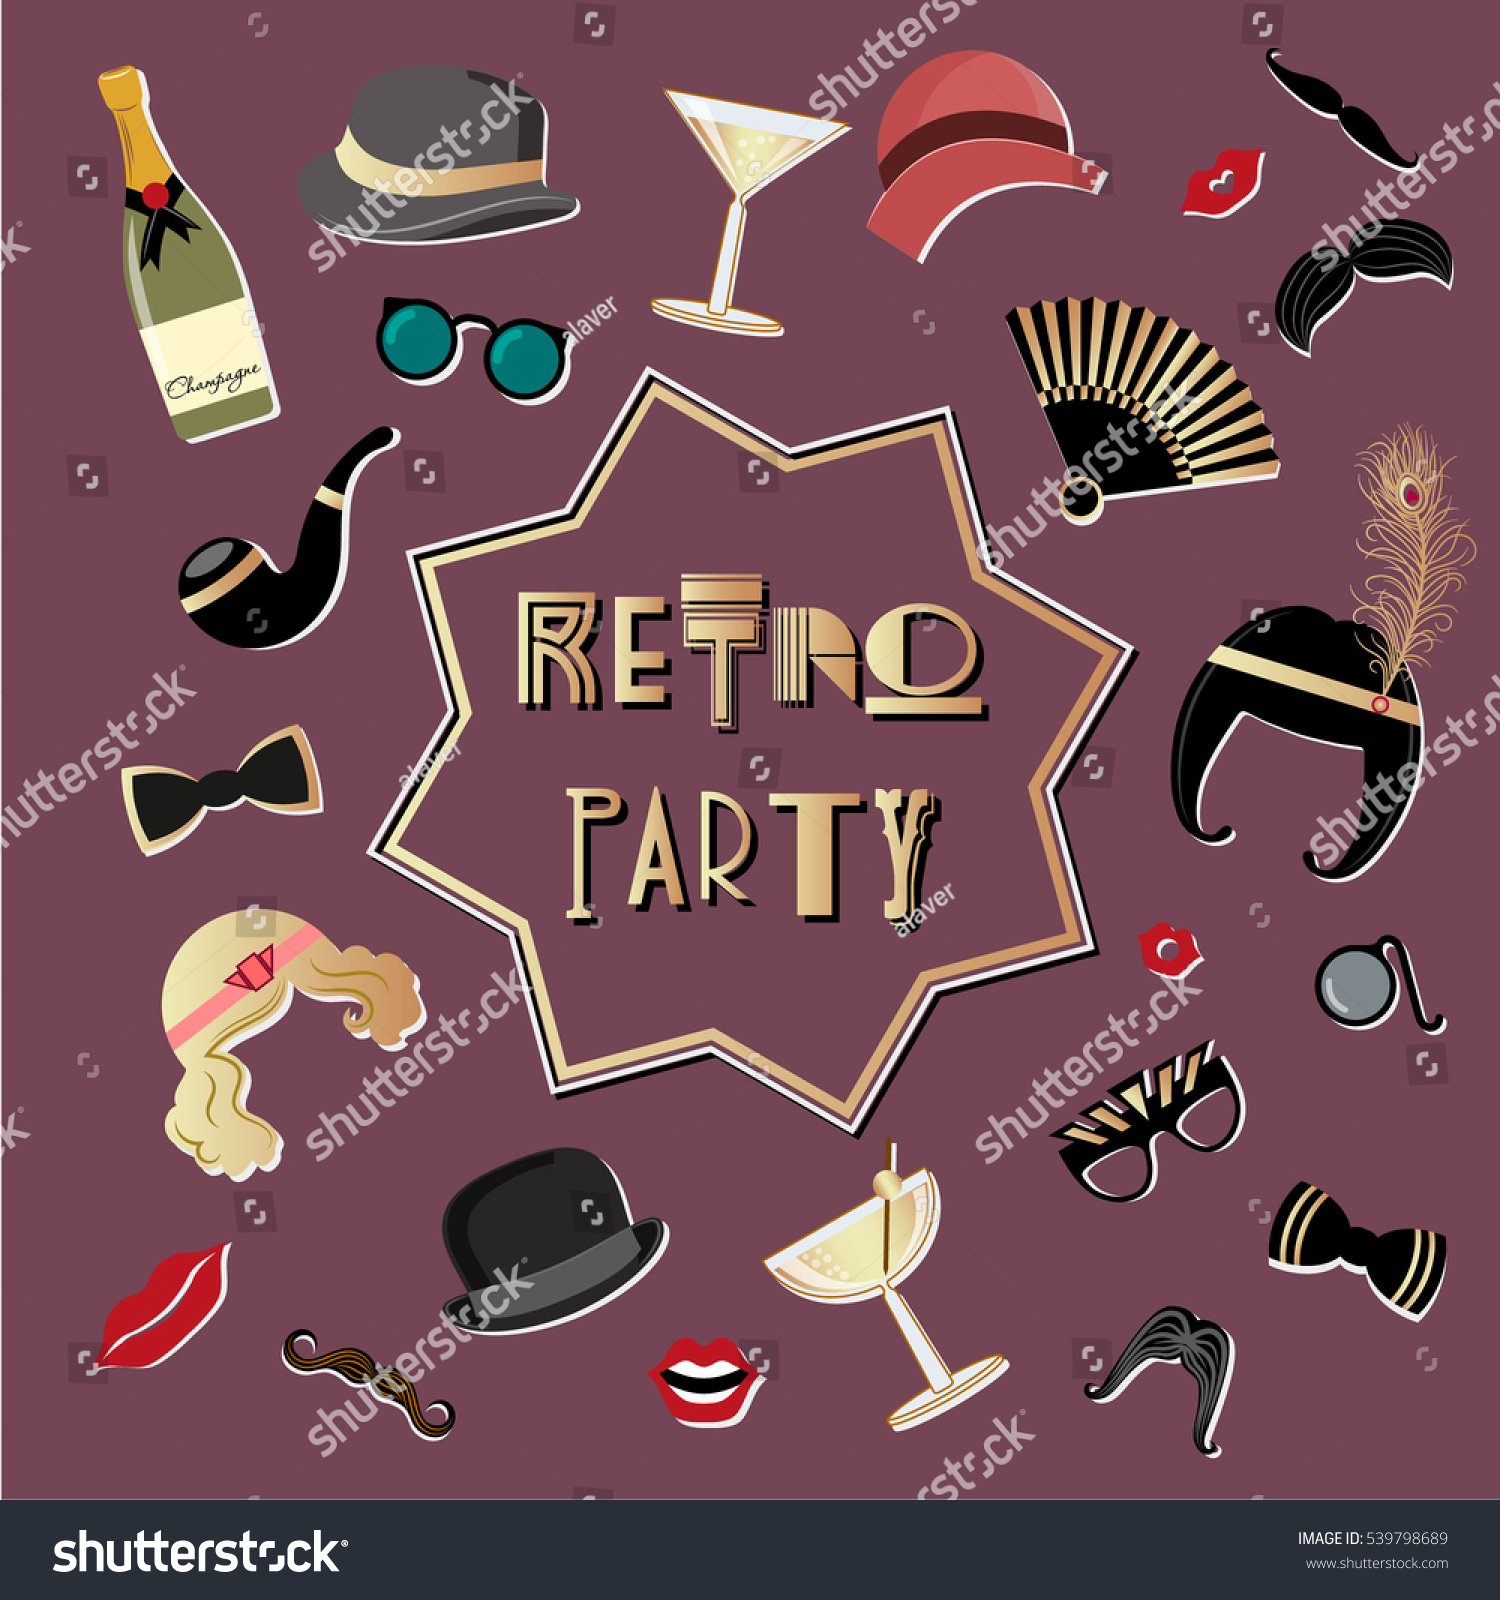 Vector set of elements for a retro party Suitable for flyers banners illustrations photo booth props Art Deco style